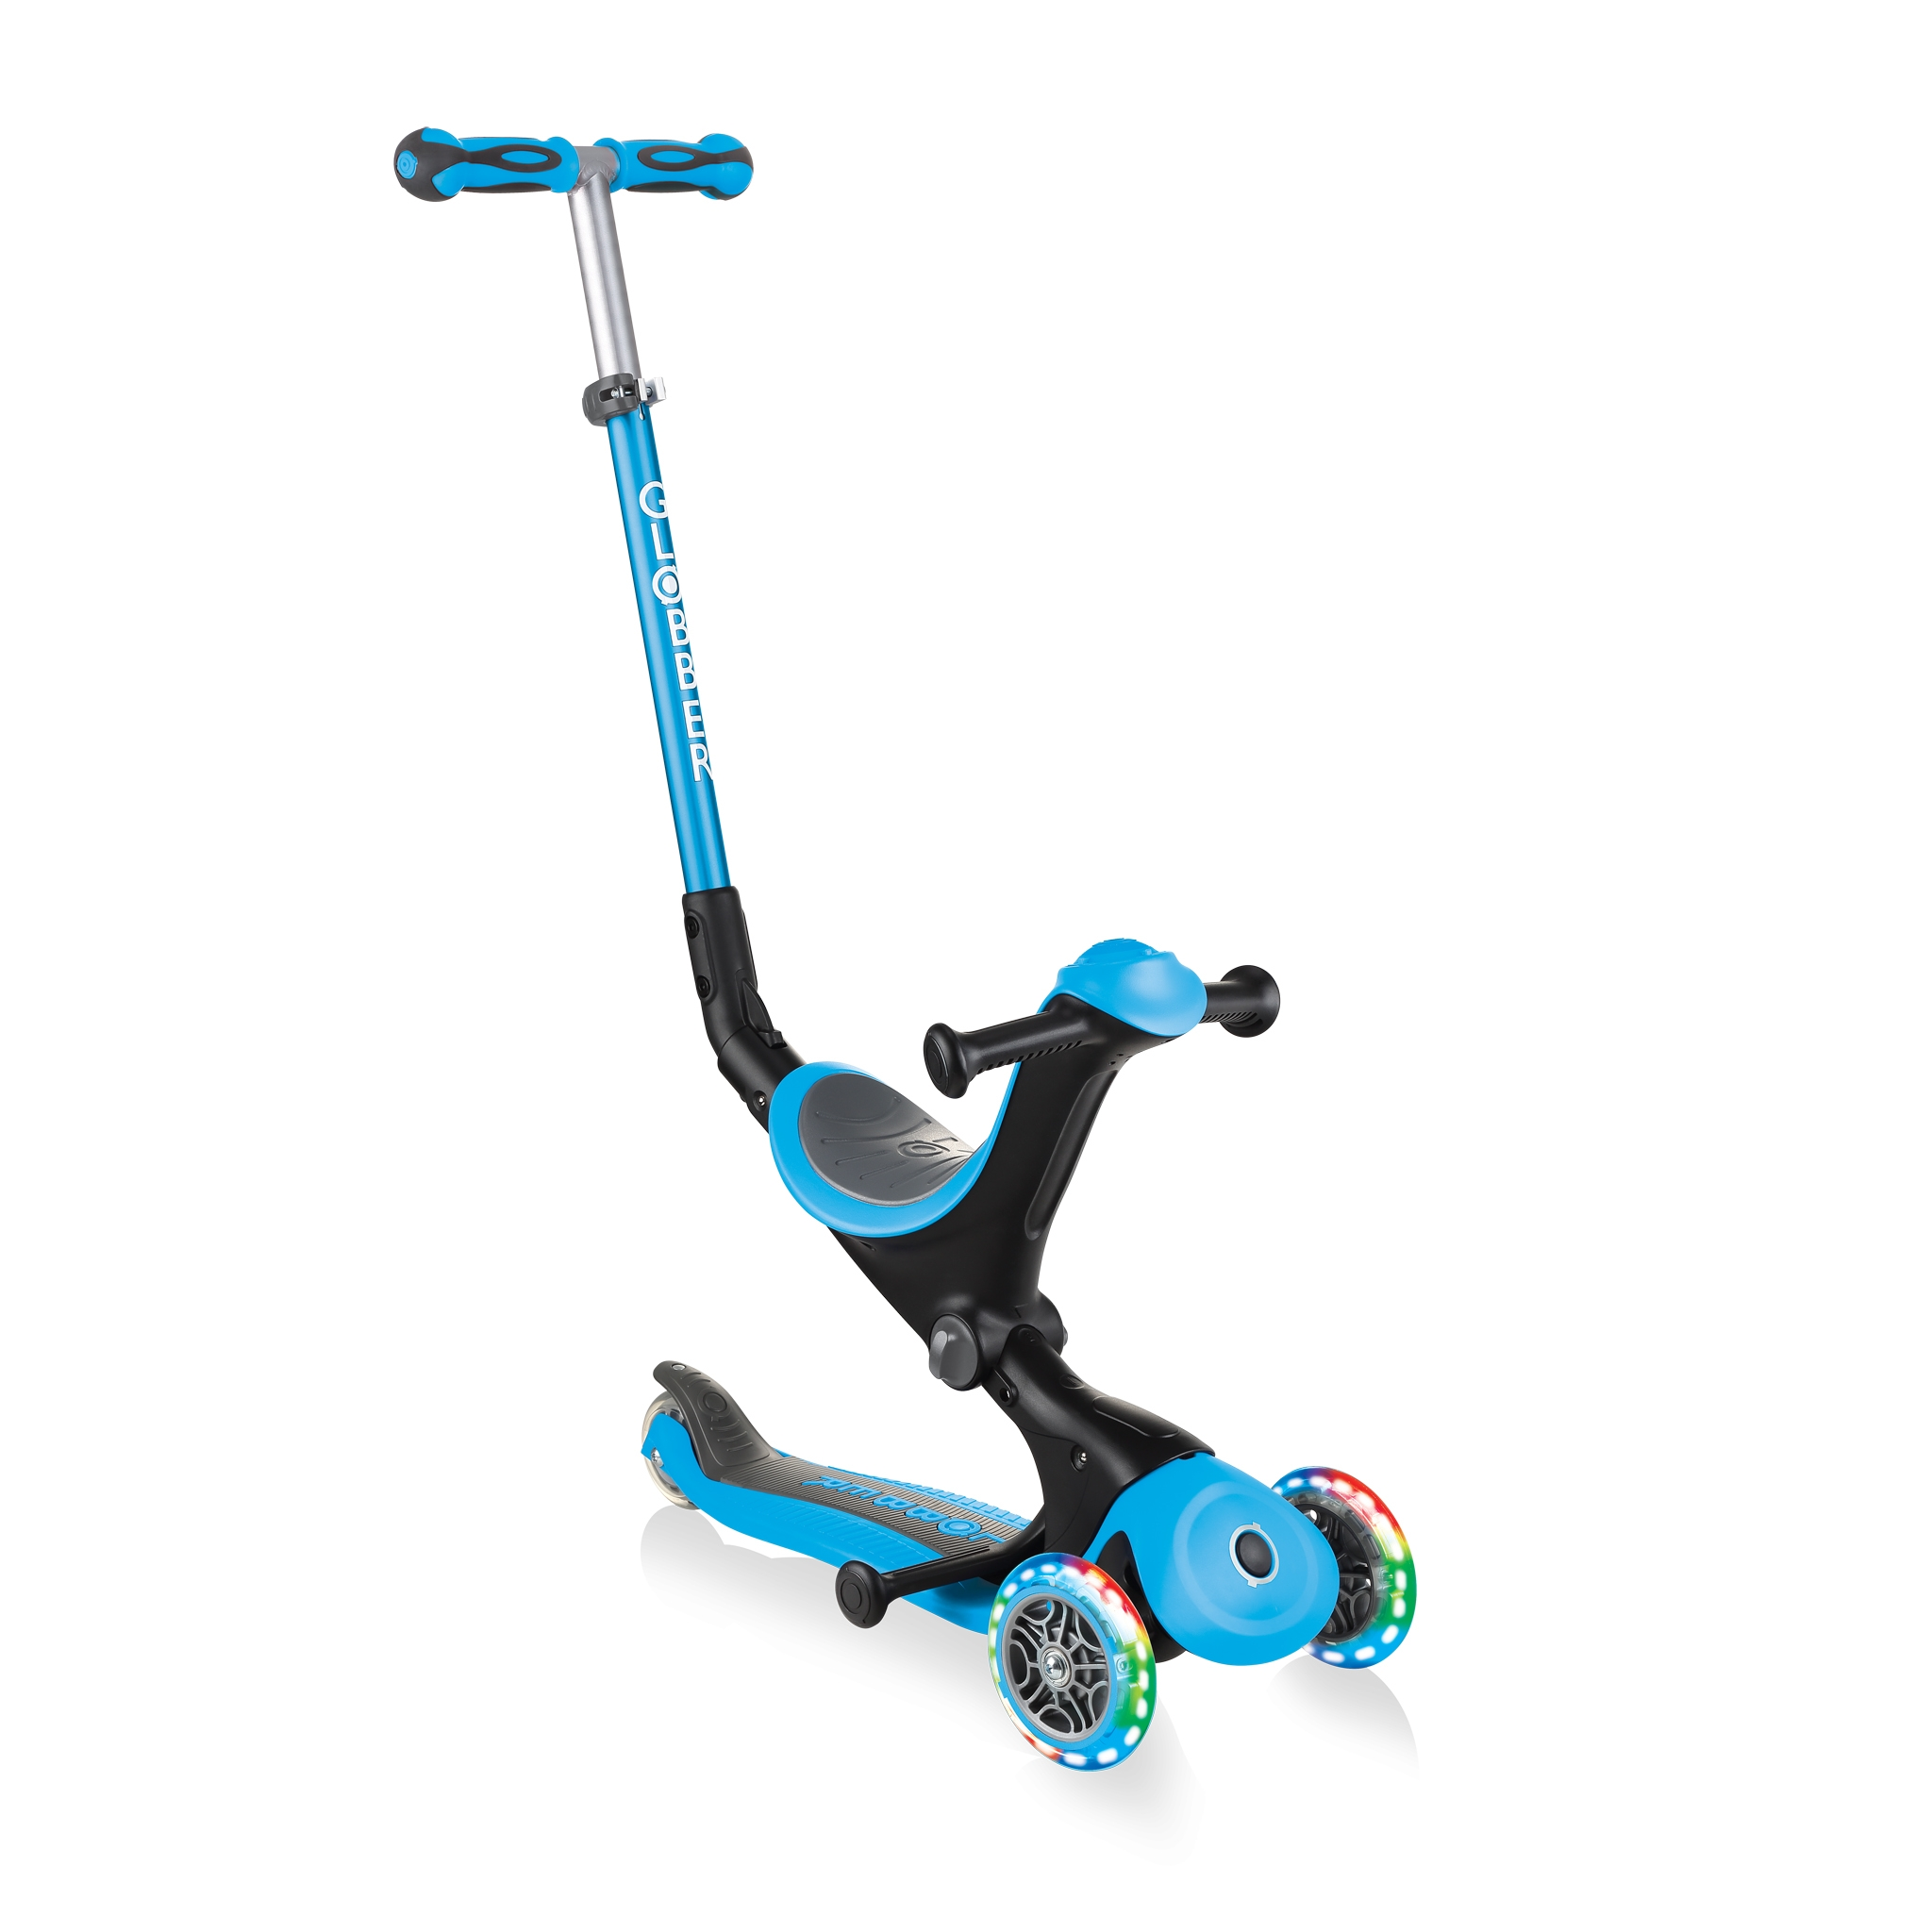 GO-UP-DELUXE-LIGHTS-ride-on-walking-bike-scooter-with-light-up-wheels-sky-blue